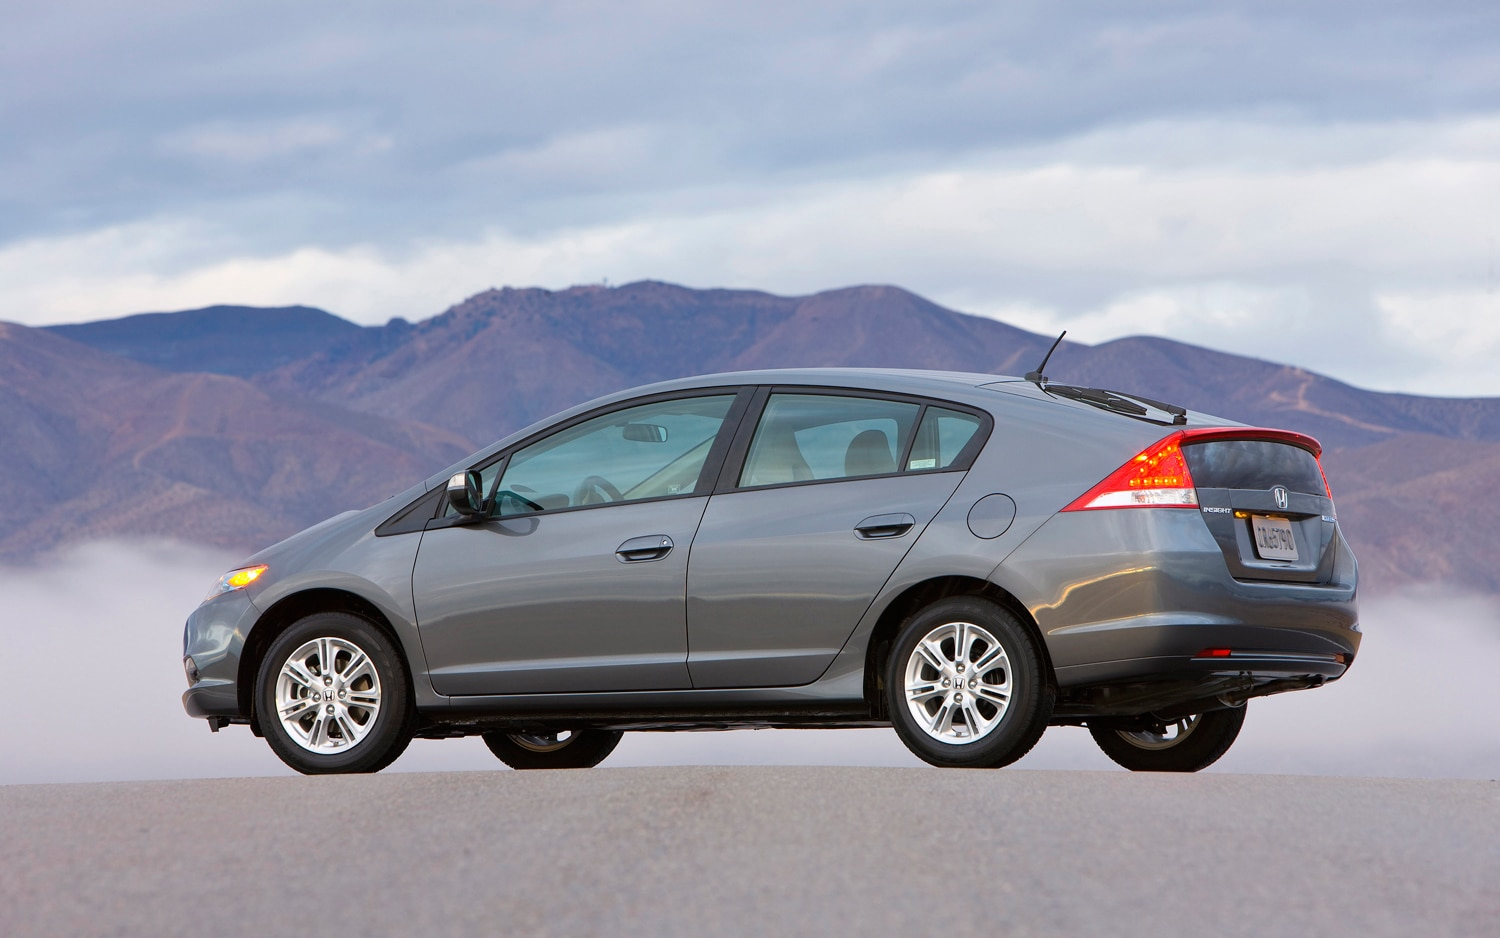 2017 Honda Insight Hybrid Review Price Pictures Mpg Specs 2017 2018 Best Cars Reviews